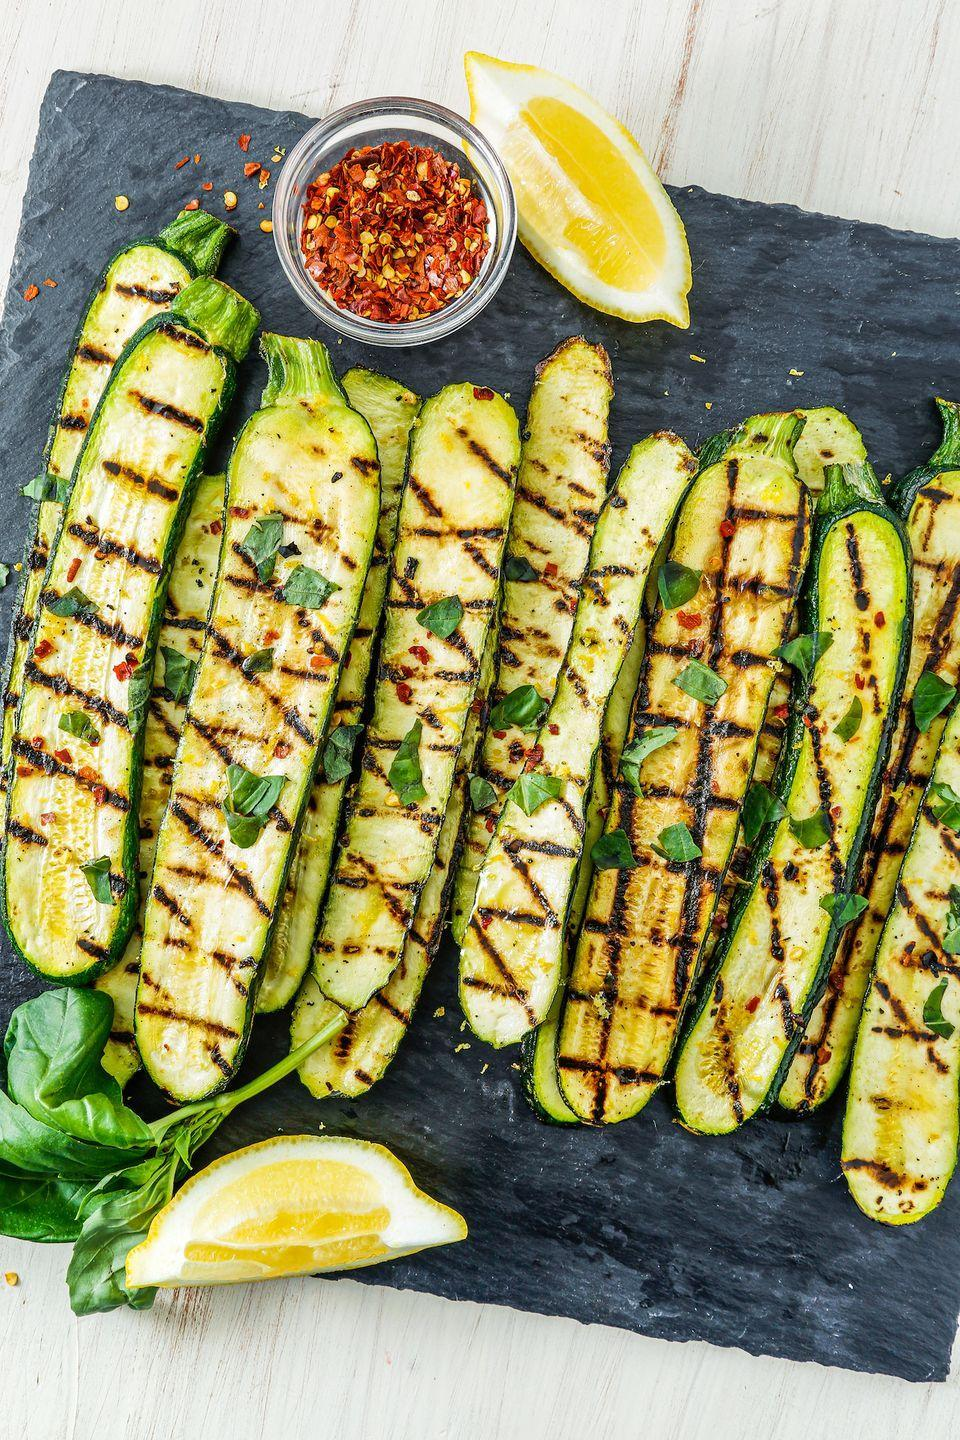 """<p>So simple, easy, and beautiful, it's hard to find a better use for fresh zucchini.</p><p>Get the recipe from <a href=""""https://www.delish.com/cooking/recipe-ideas/recipes/a53484/grilled-zucchini-recipe/"""" rel=""""nofollow noopener"""" target=""""_blank"""" data-ylk=""""slk:Delish"""" class=""""link rapid-noclick-resp"""">Delish</a>.</p>"""